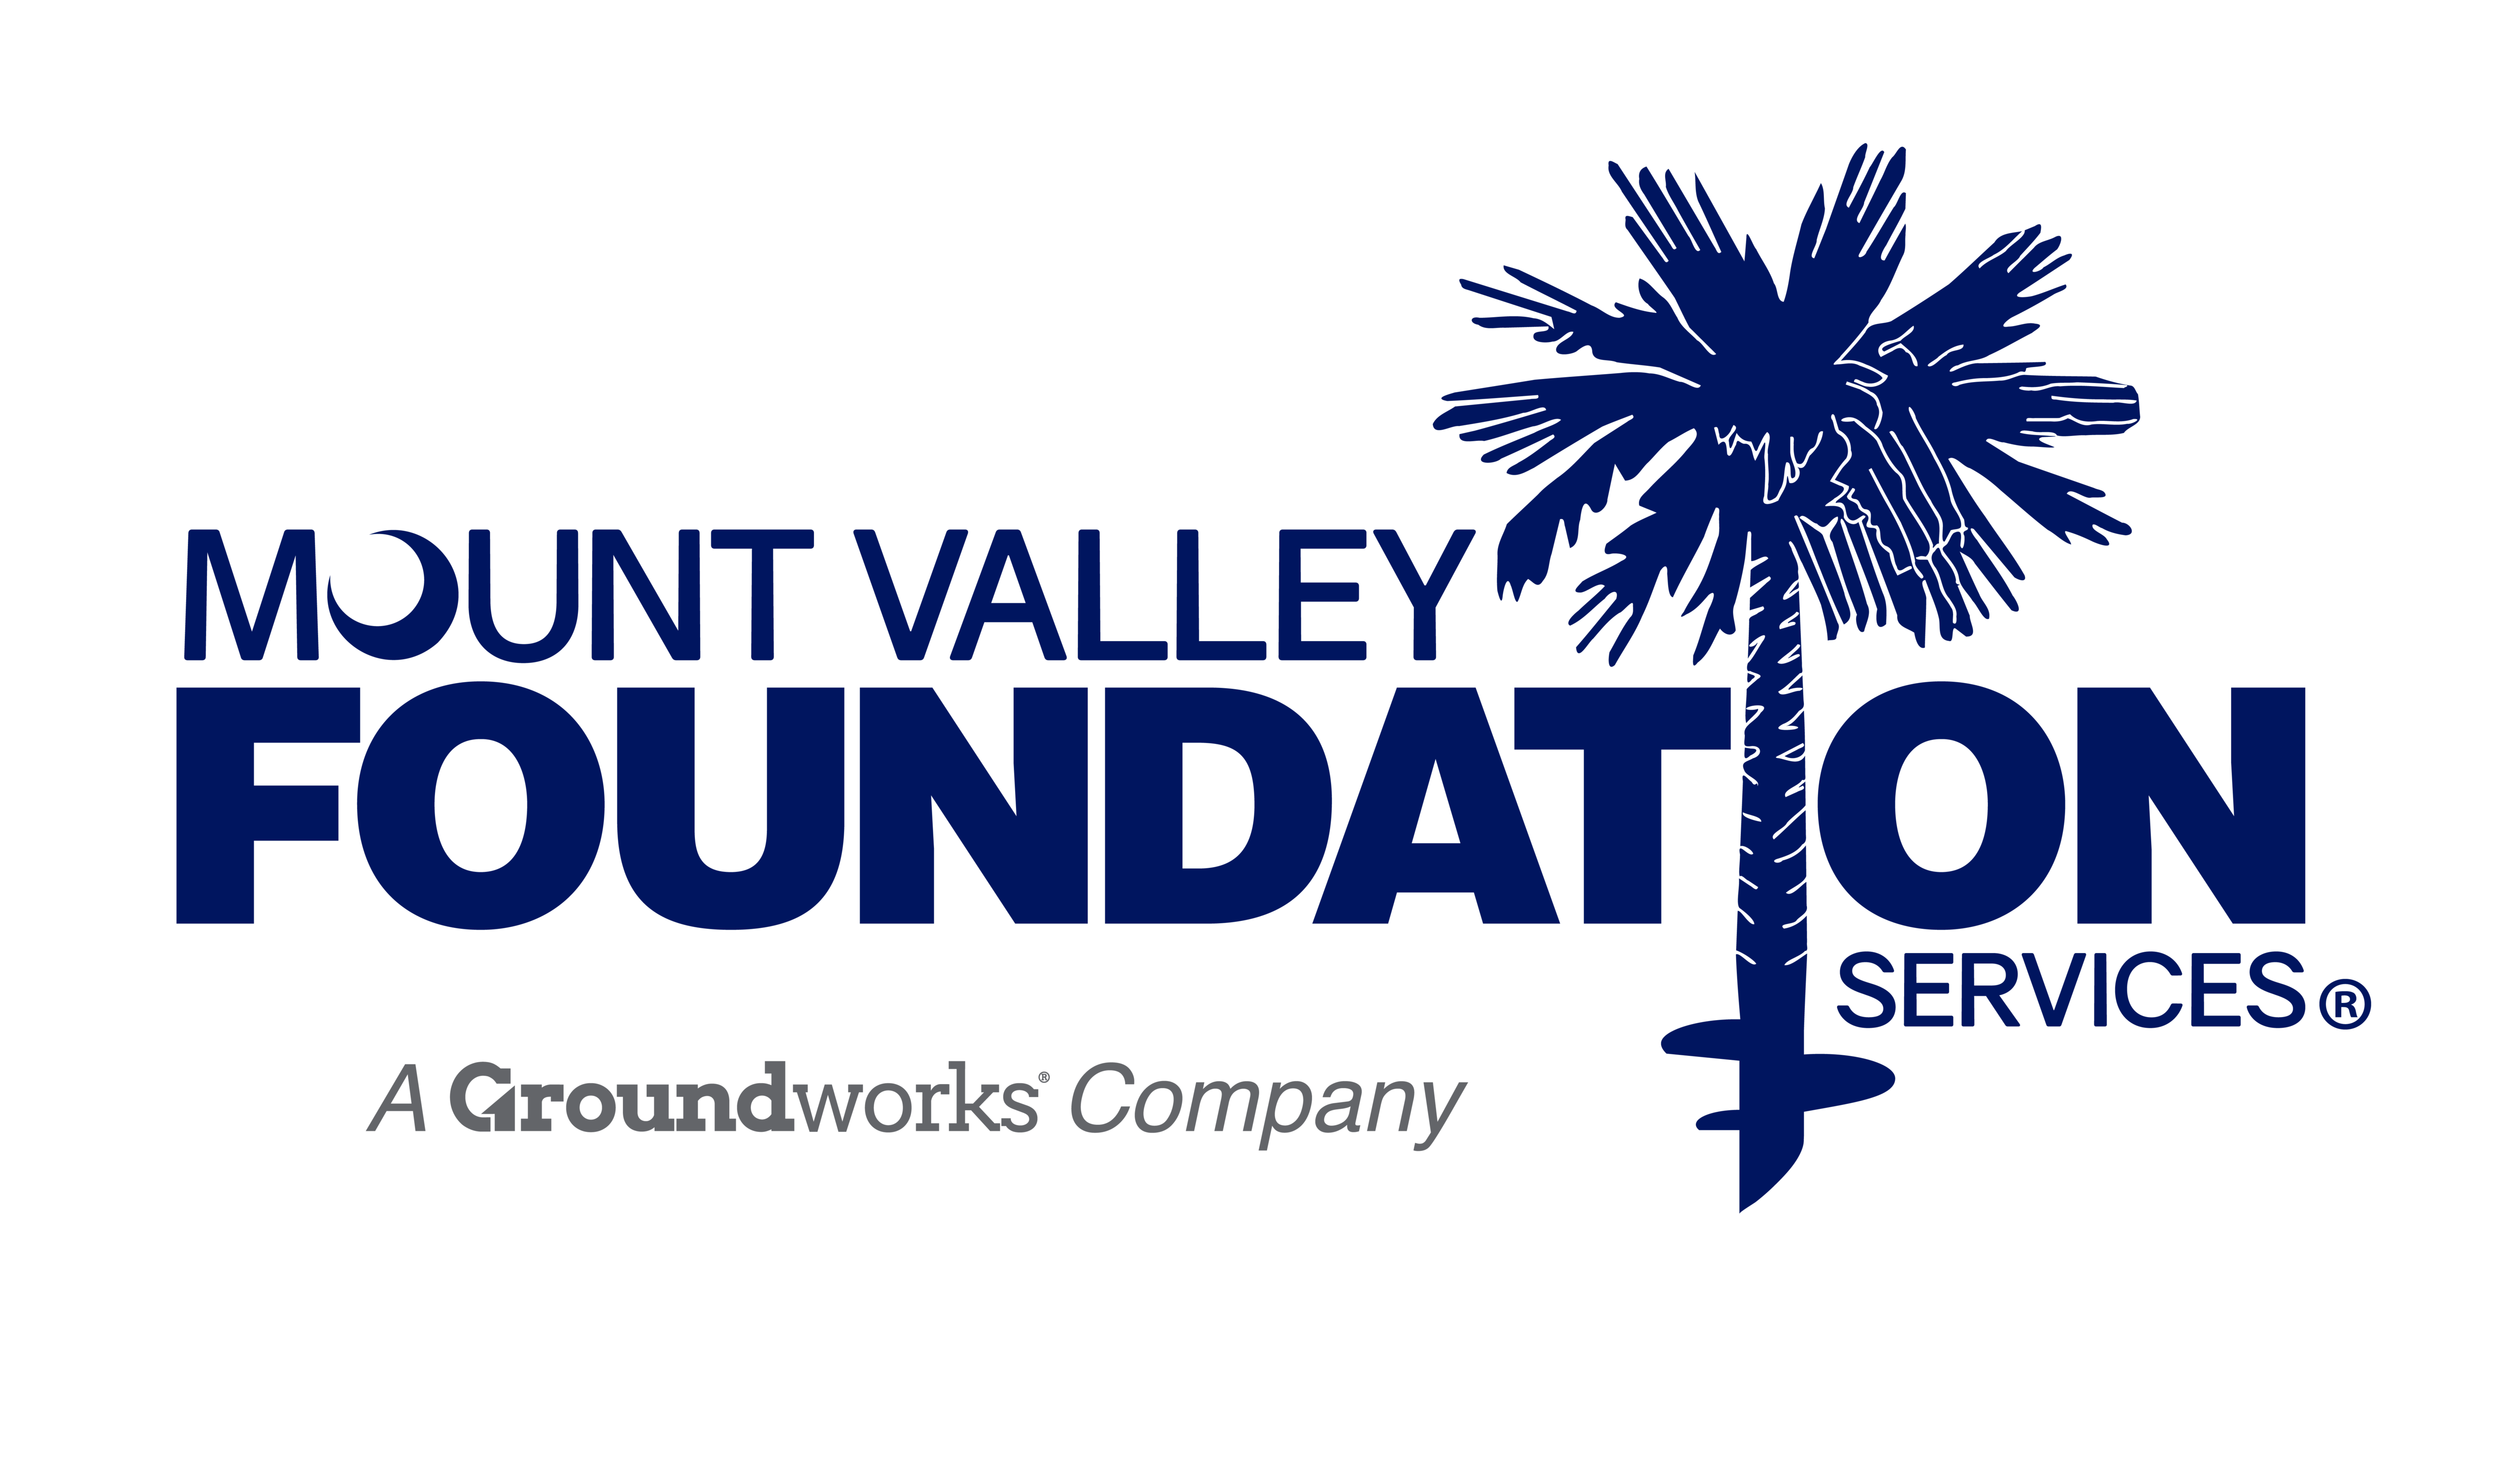 Mount Valley Foundation Services logo